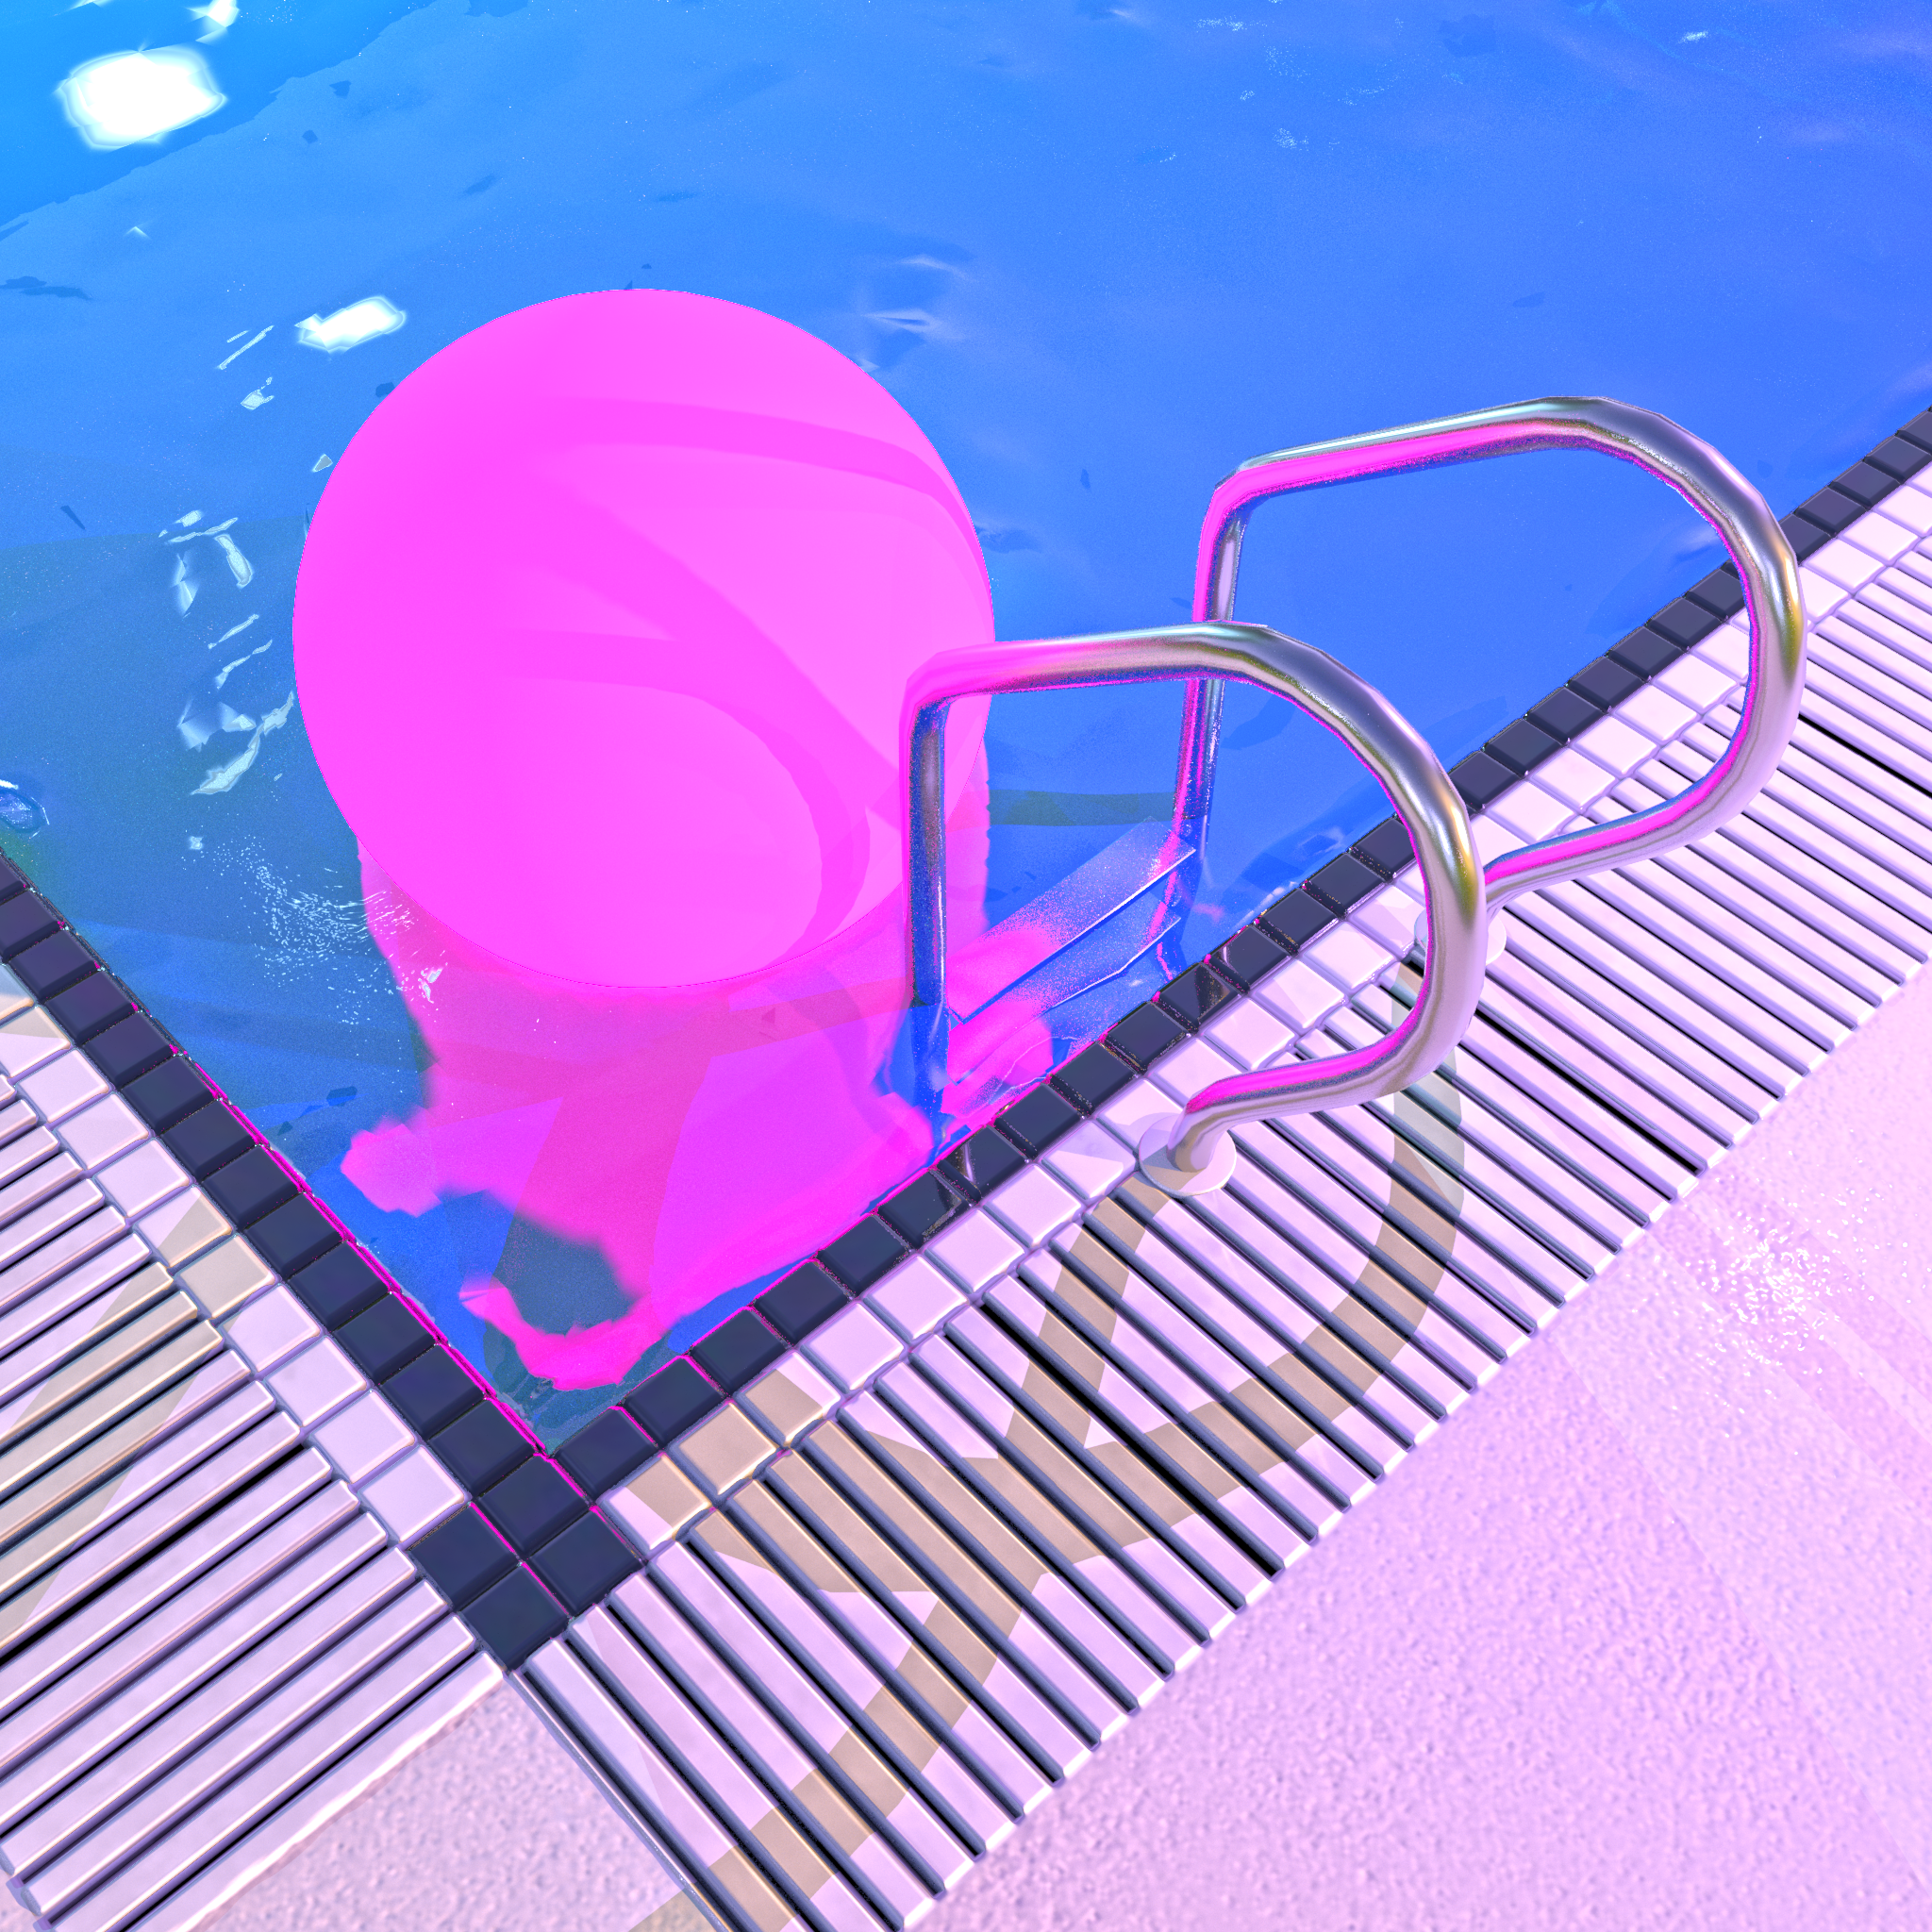 pool_light.mantra_ipr.0163_v2